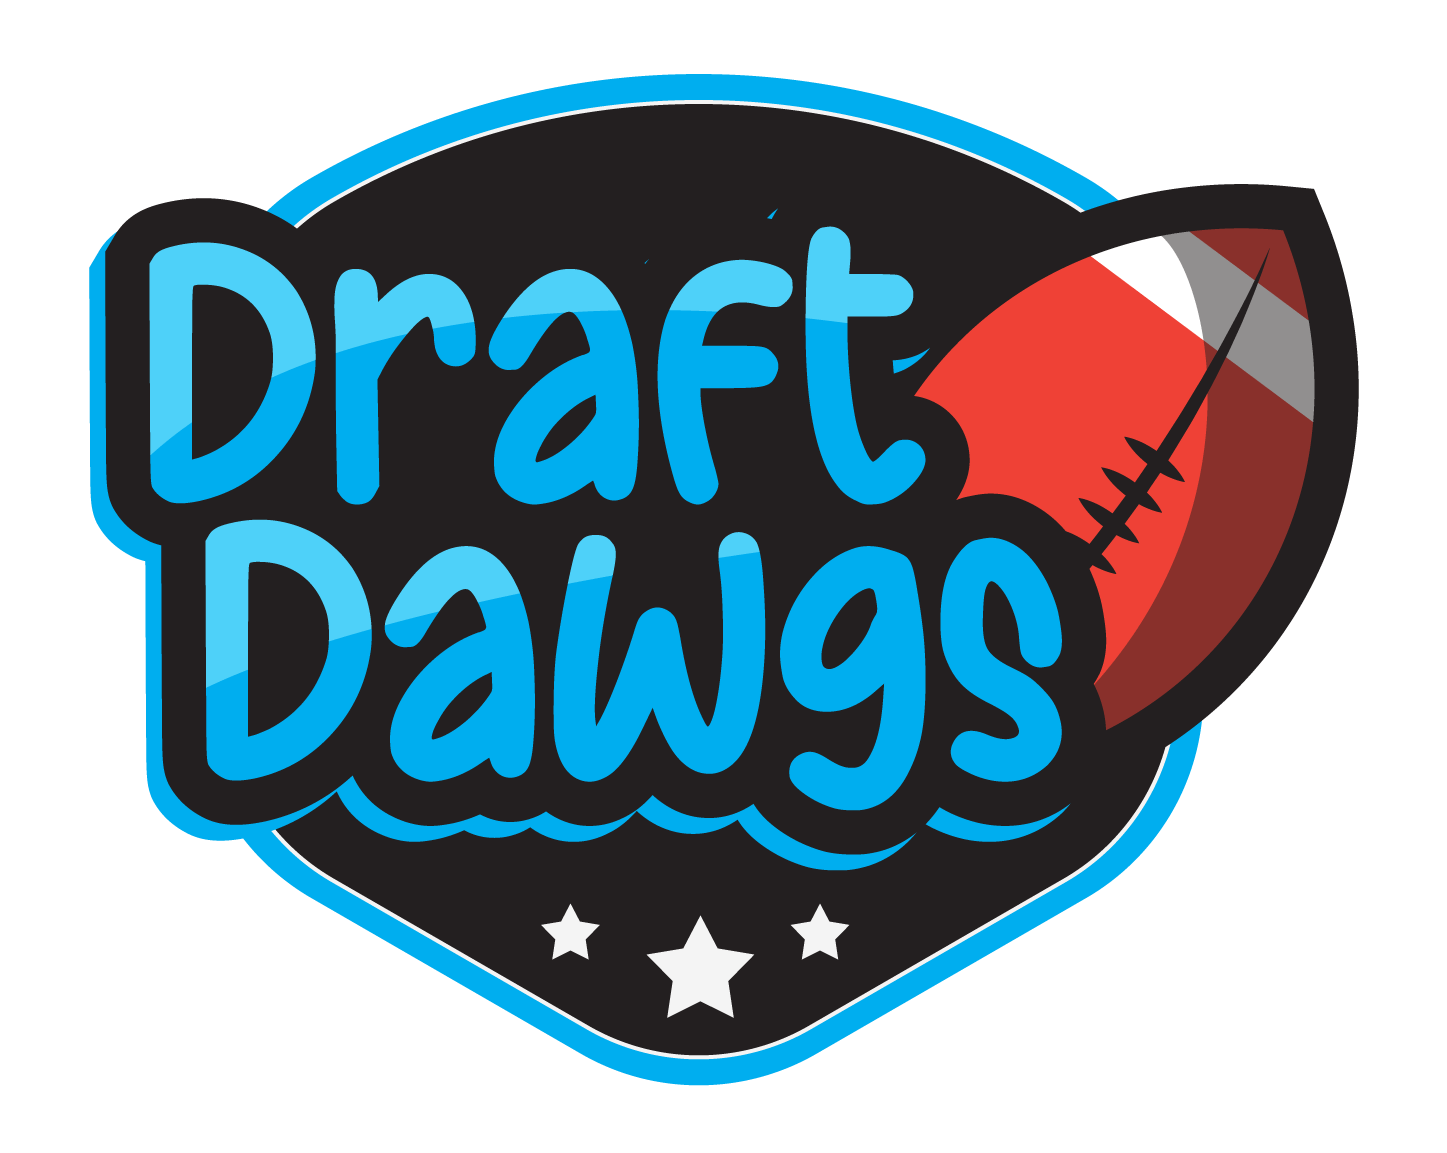 Draft Dawgs